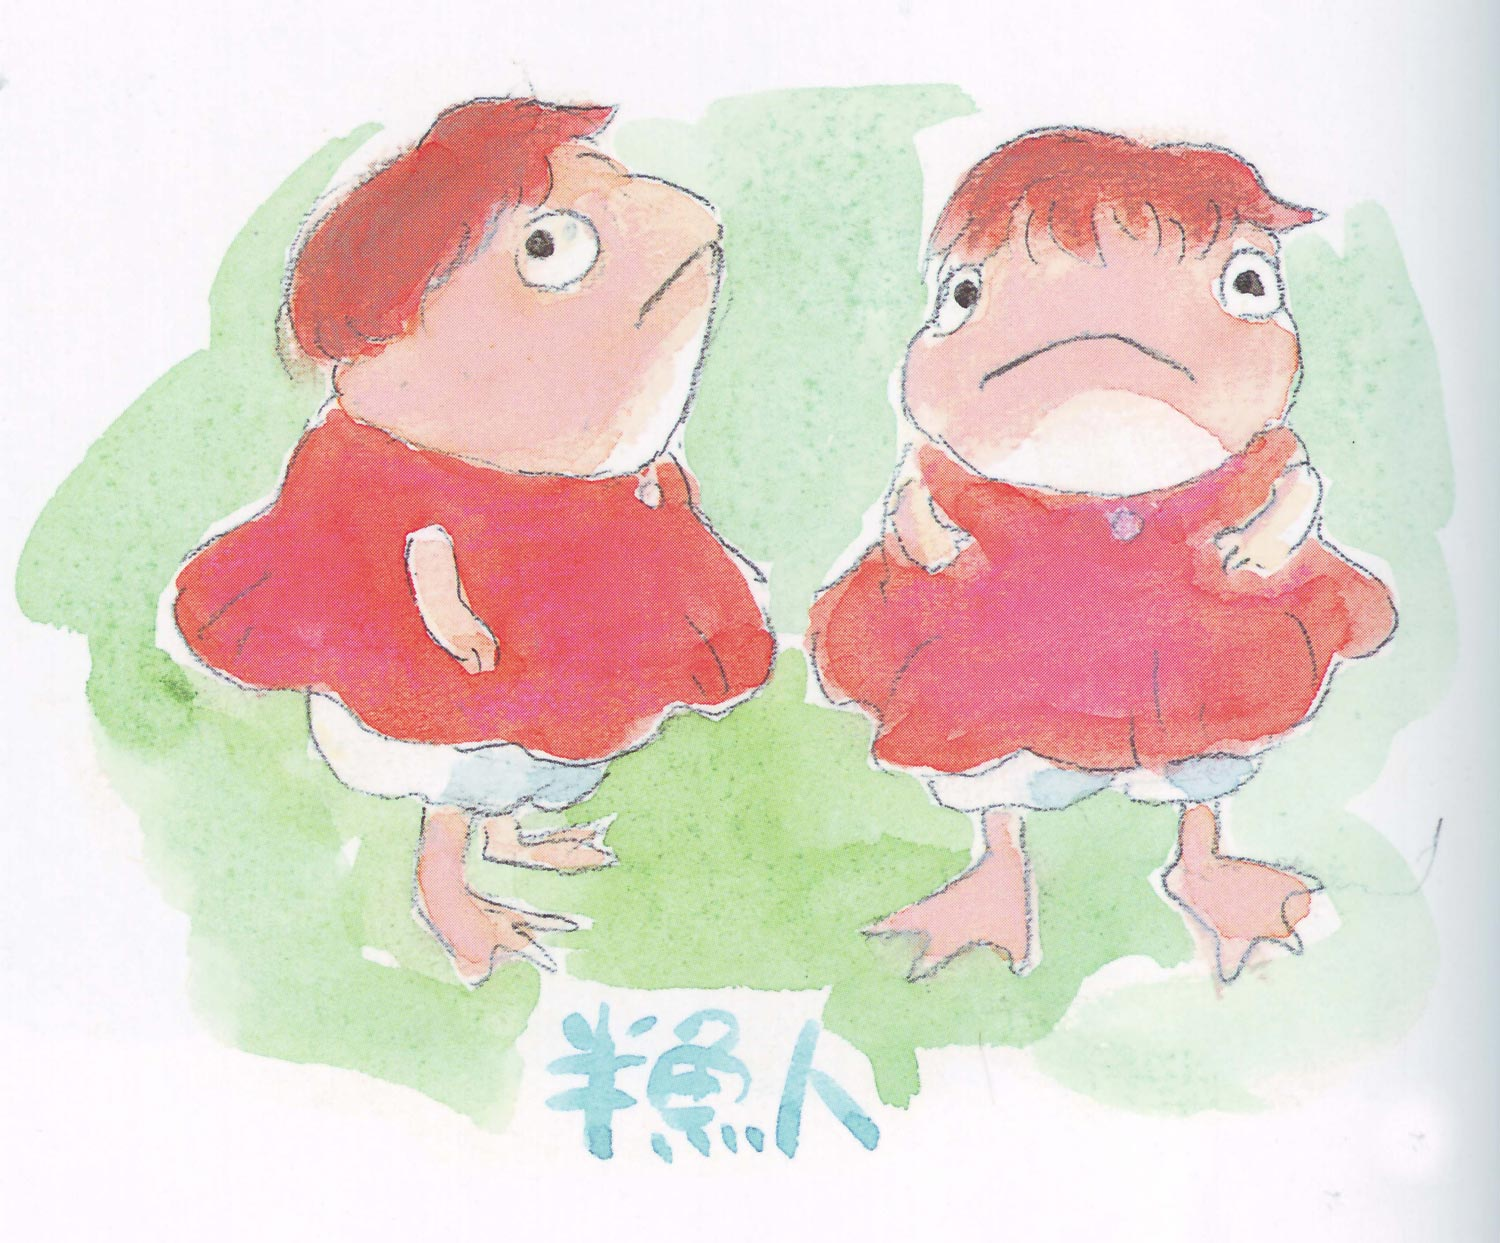 ponyo_on_the_cliff_by_the_sea_artwork_character__08.jpg